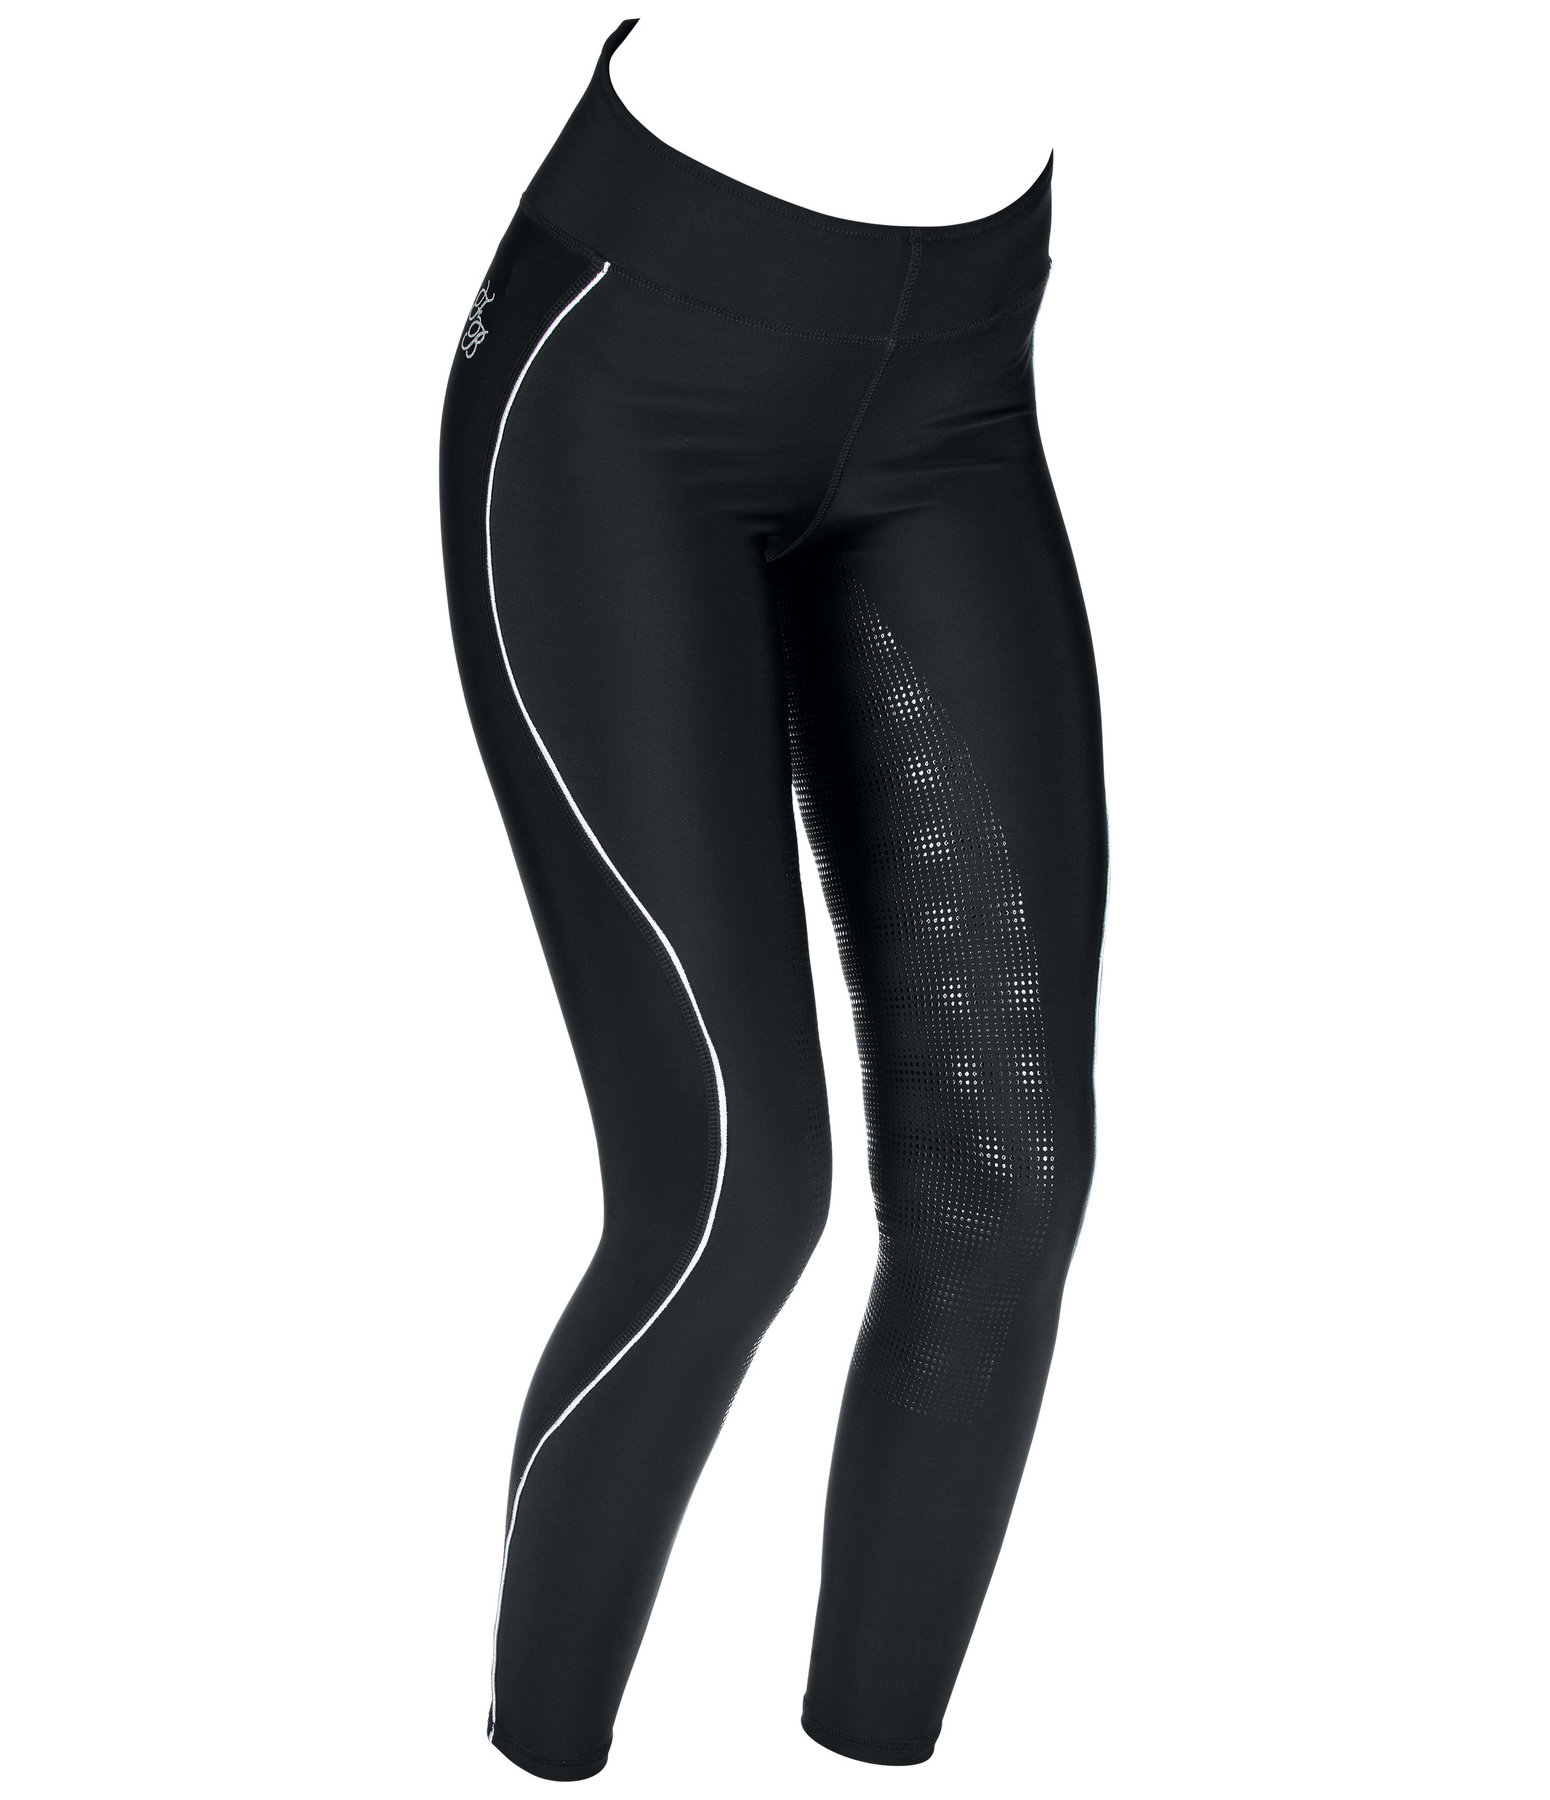 High Waist Grip Full-Seat Riding Leggings Leticia